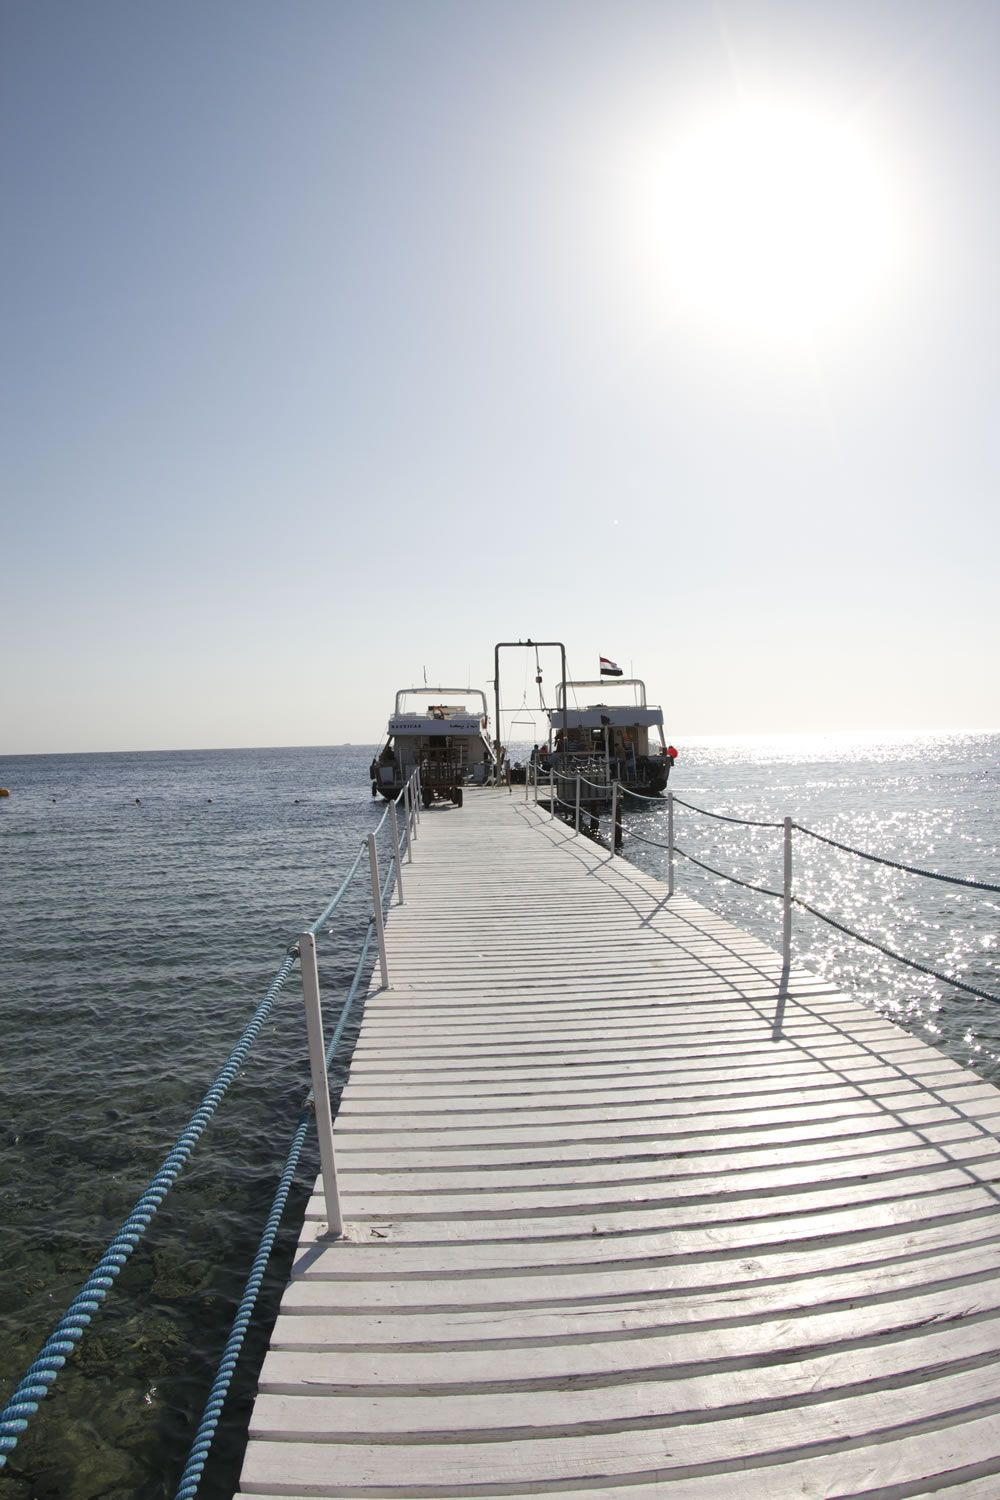 Il Diving e la Flotta - Sheikh Coast Diving Center Sharm